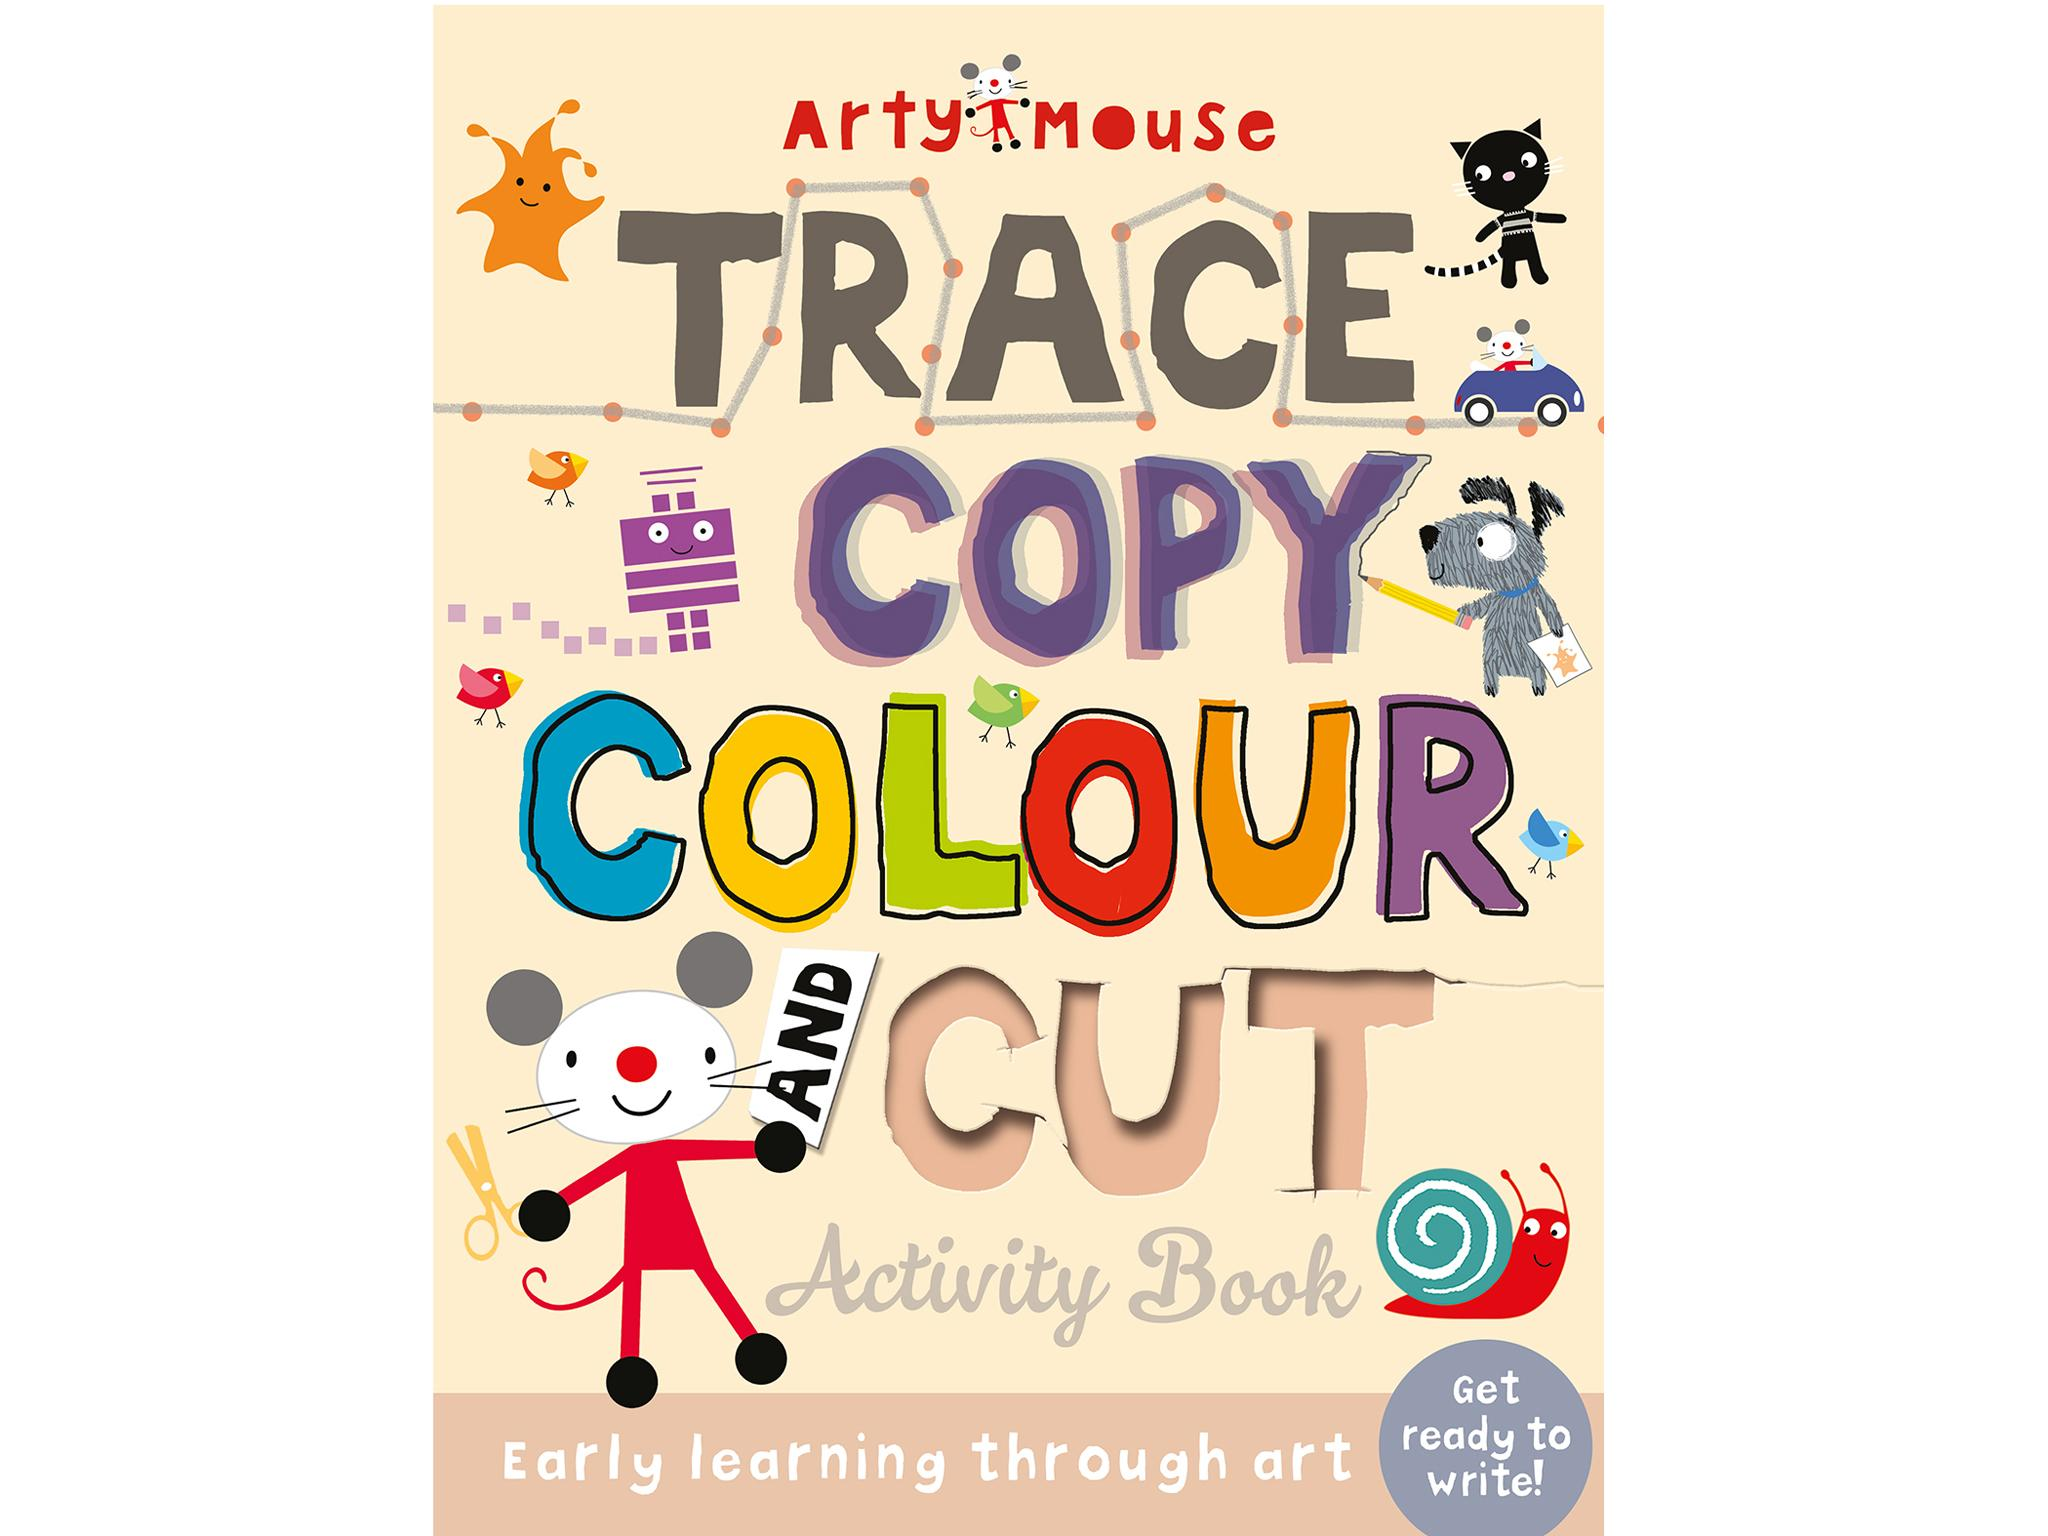 15 Best Kids Activity Books The Independent 10 Awesome Electricity Projects For Project Static Trace Copy Colour Cut 1199 Top That Publishing